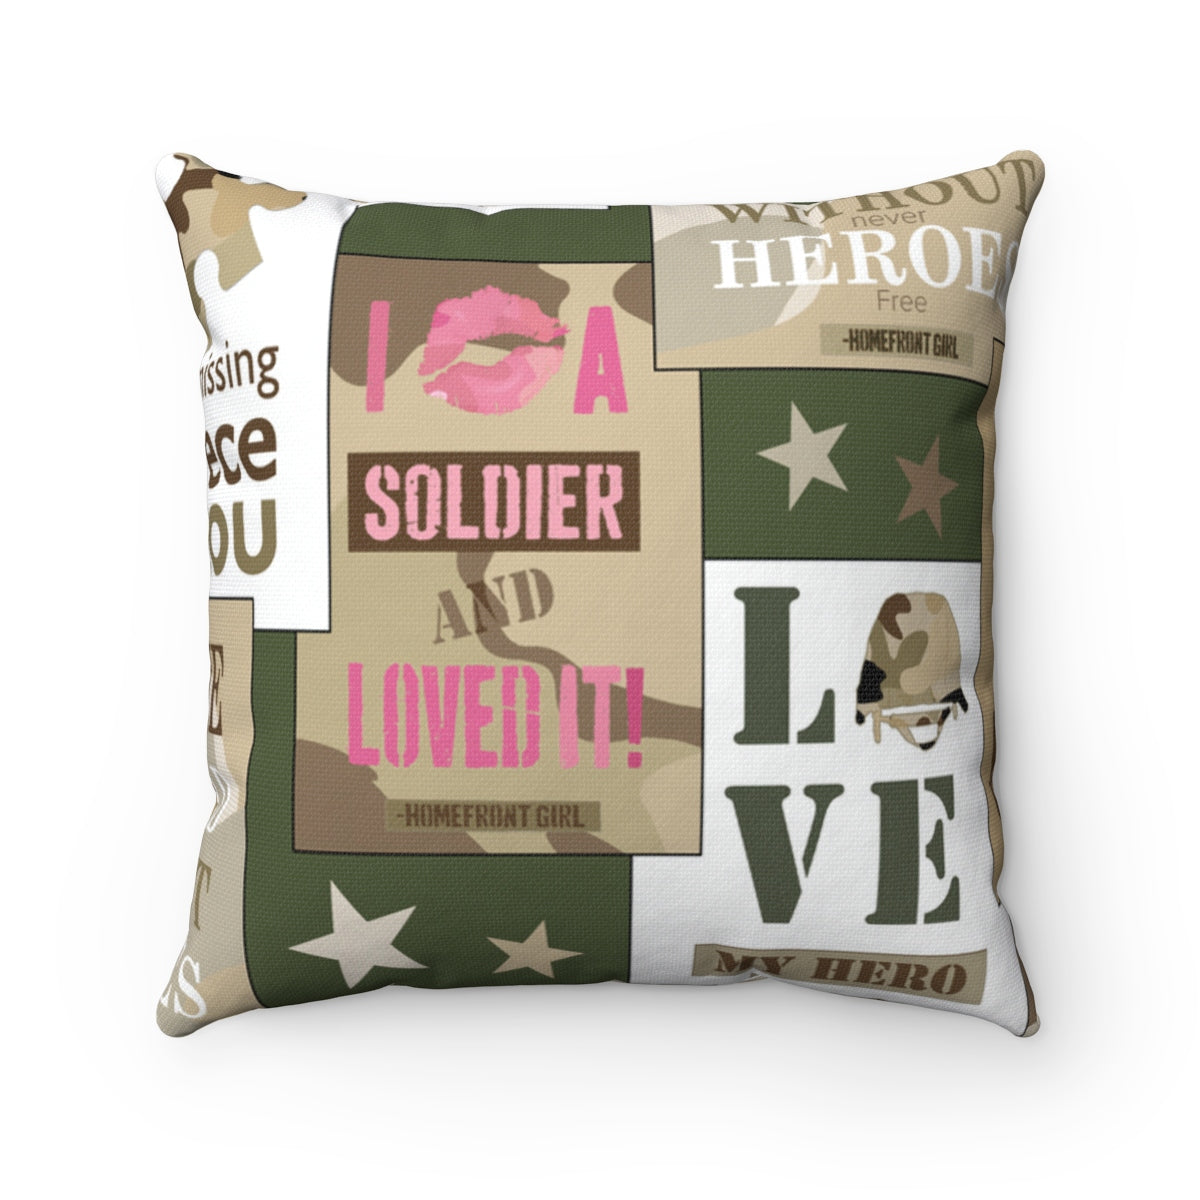 Signature Homefront Girl® HERO Patch design - Spun Polyester Square Pillow - [shop_home]